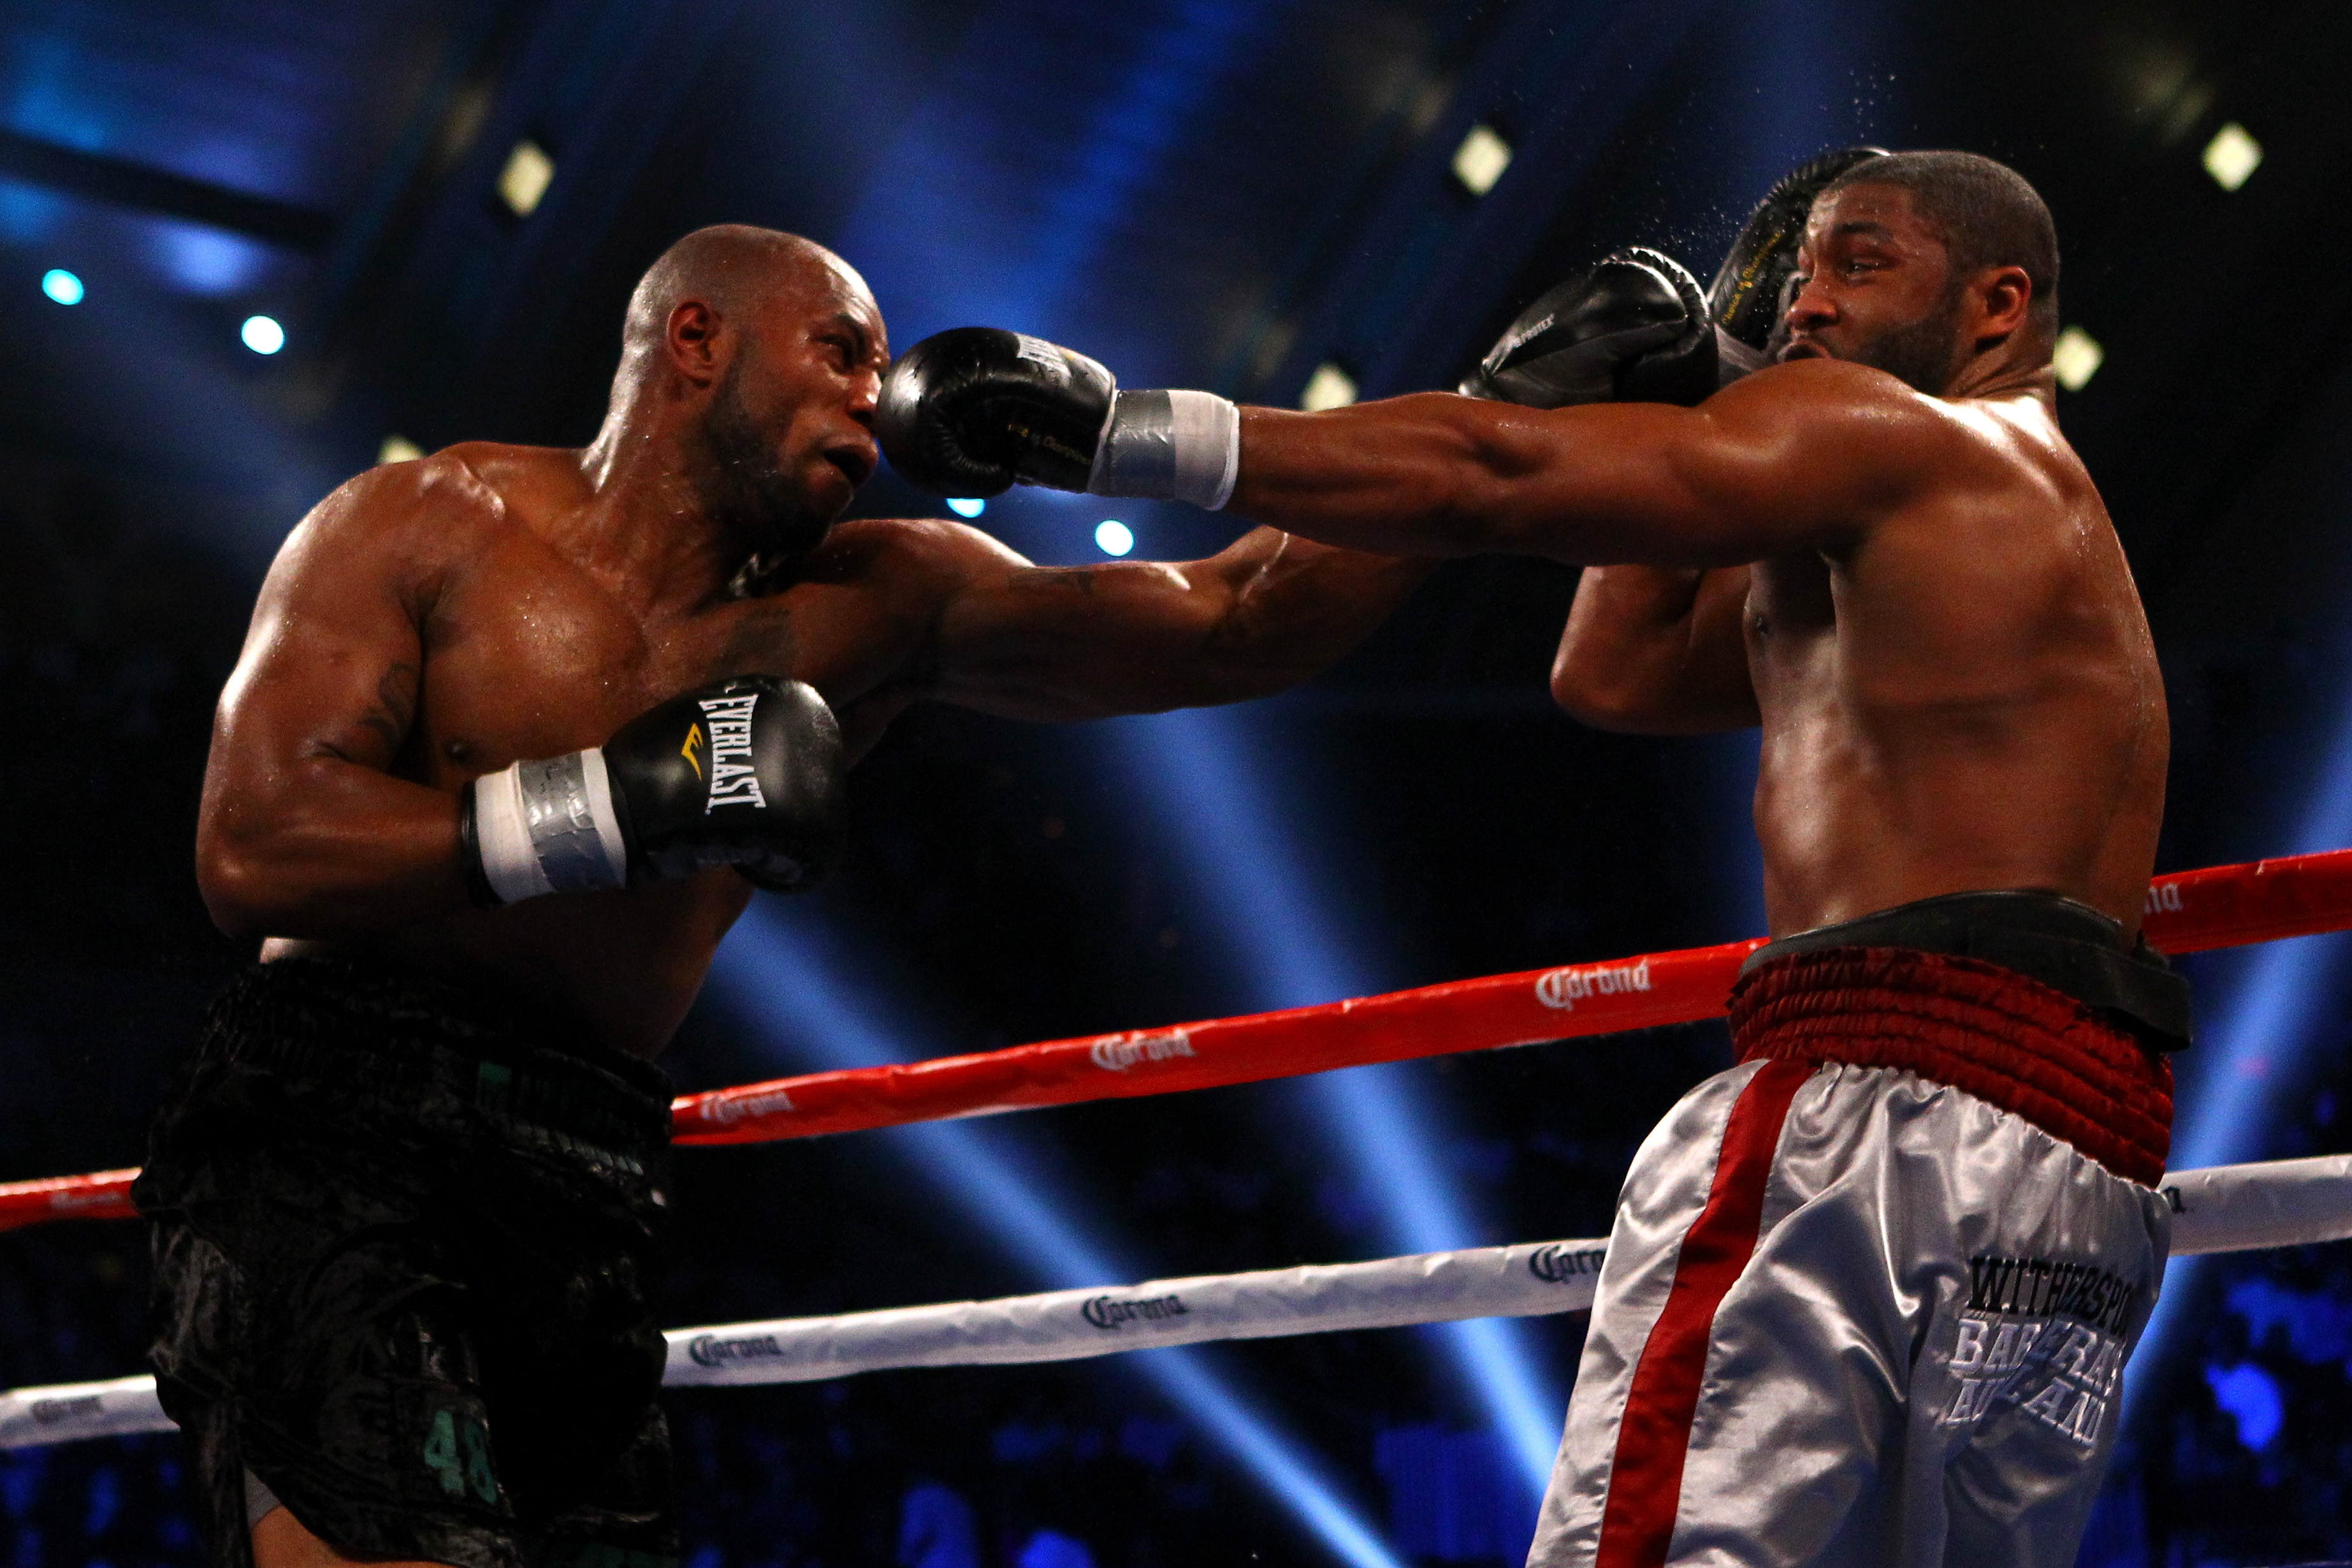 Seth Mitchell v Chazz Witherspoon